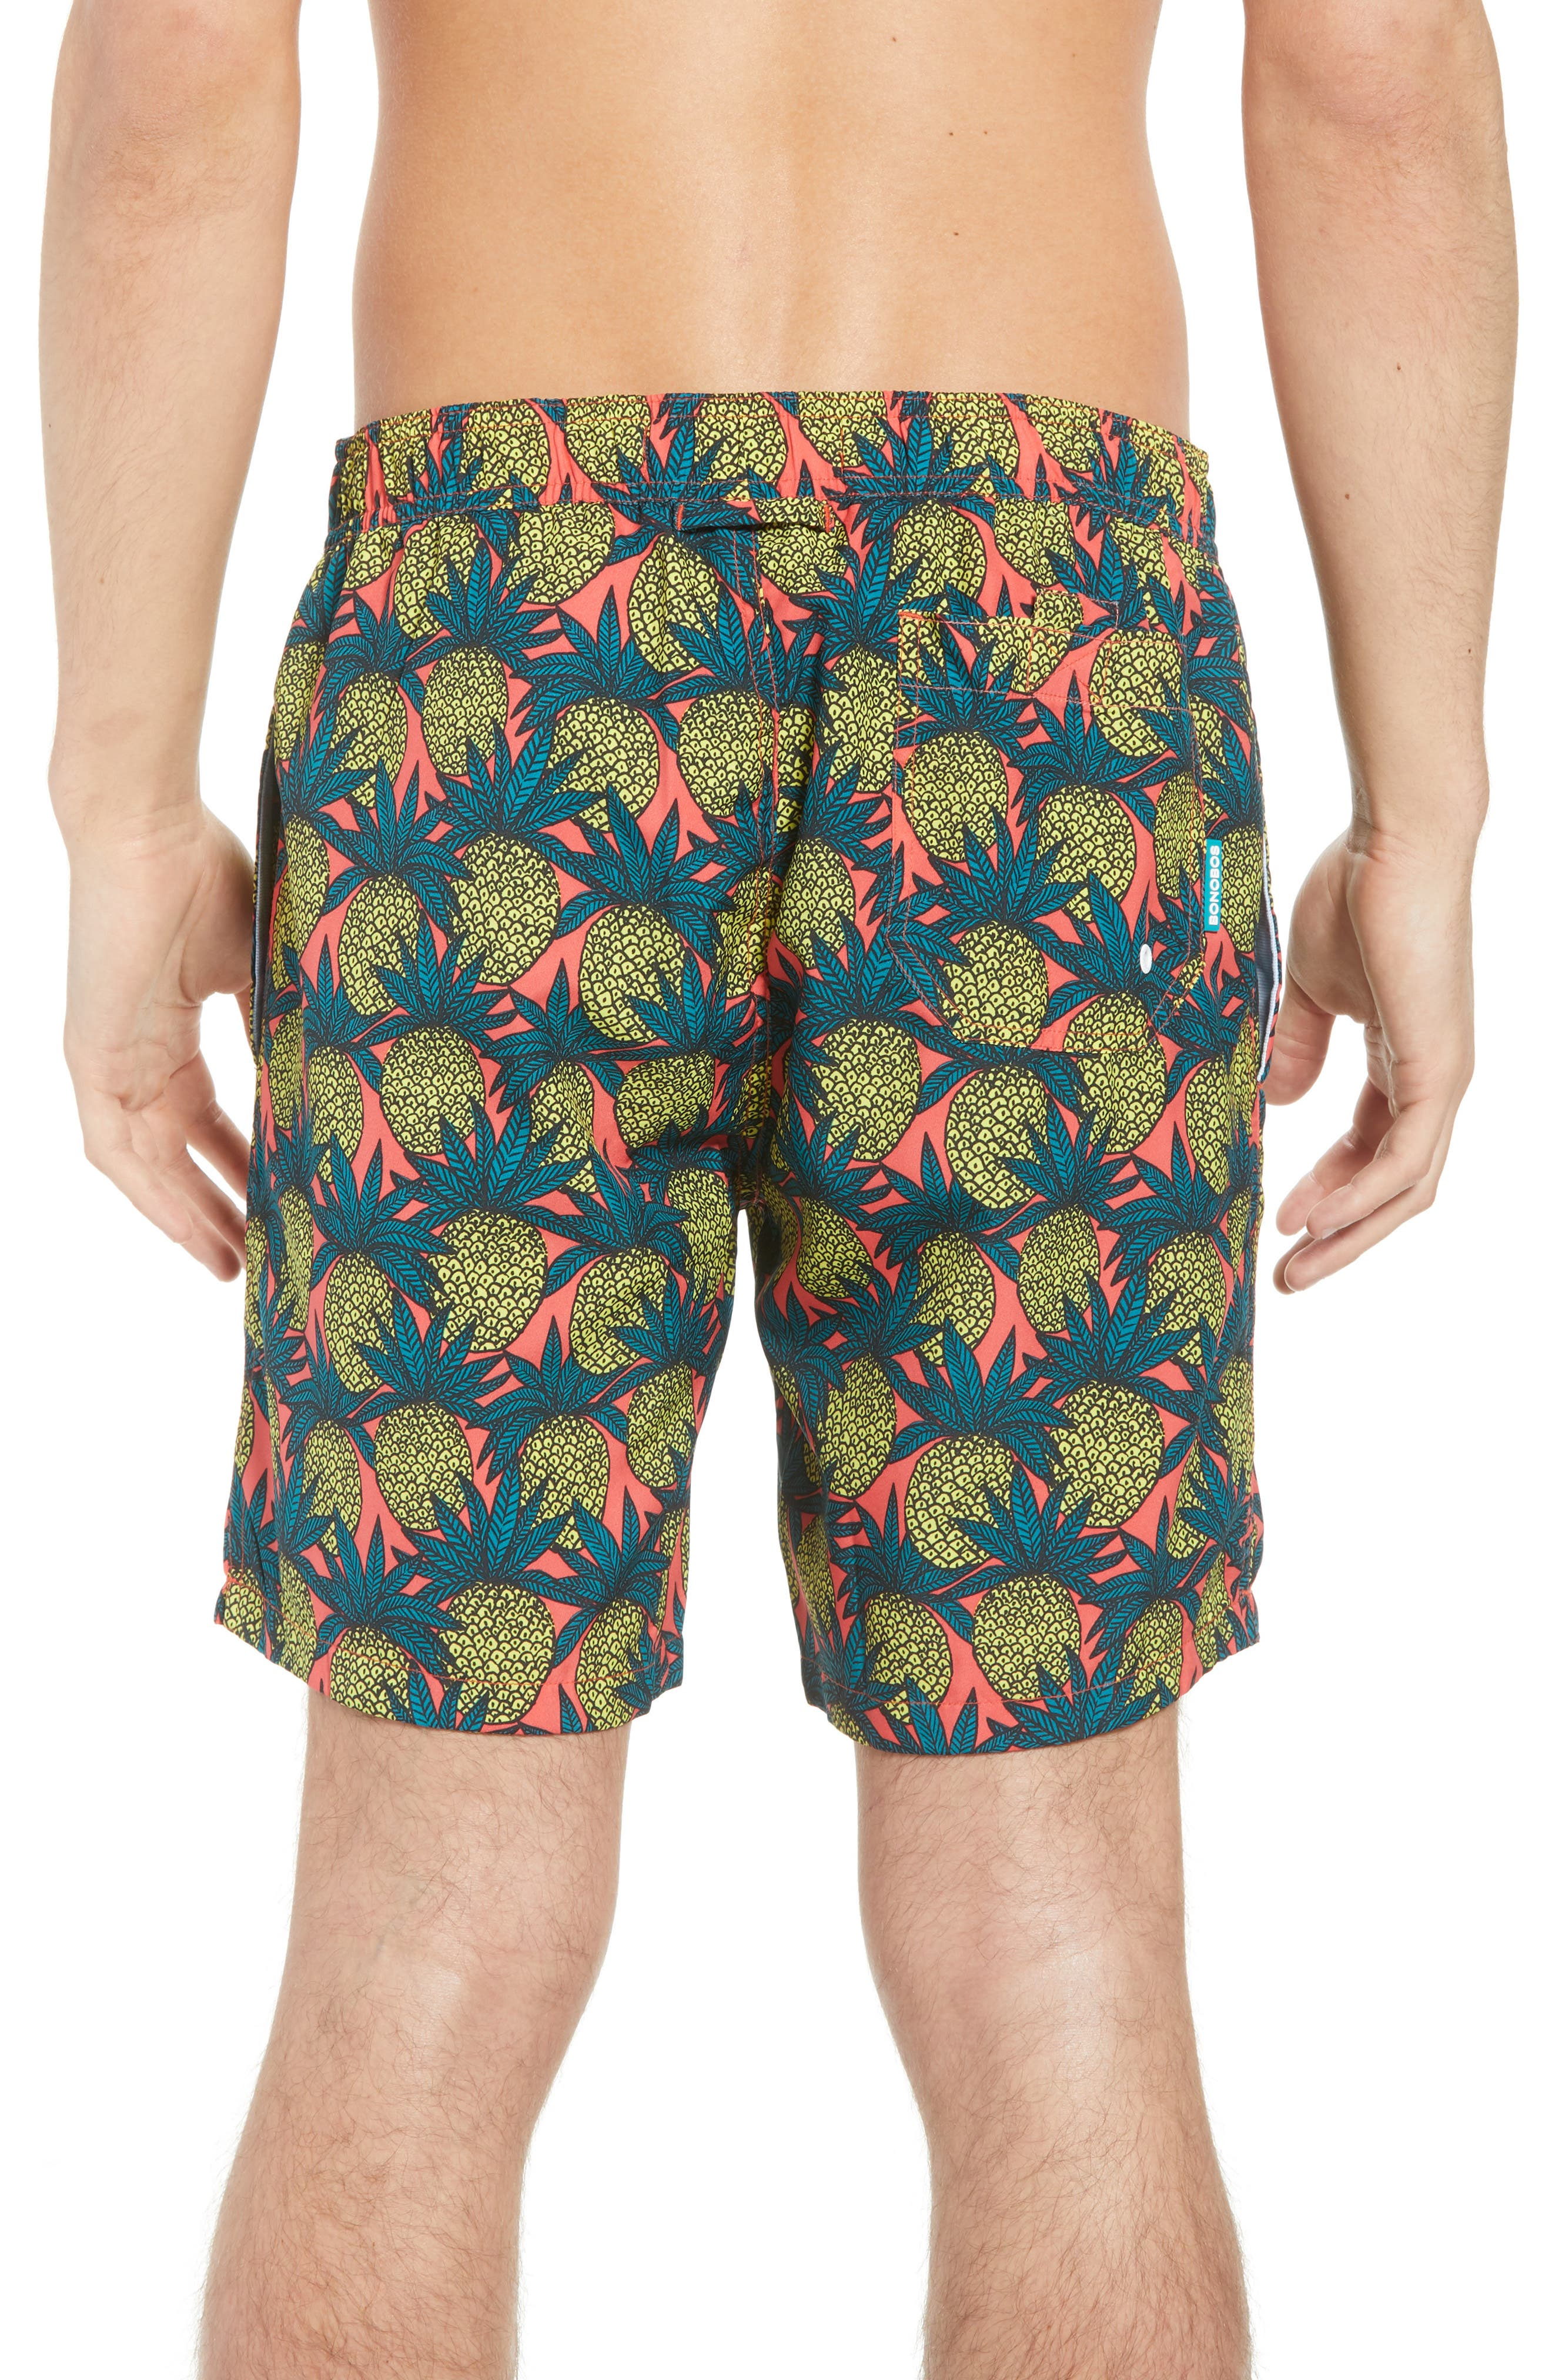 Banzai 7-Inch Swim Trunks,                             Alternate thumbnail 2, color,                             Pineapple Fields